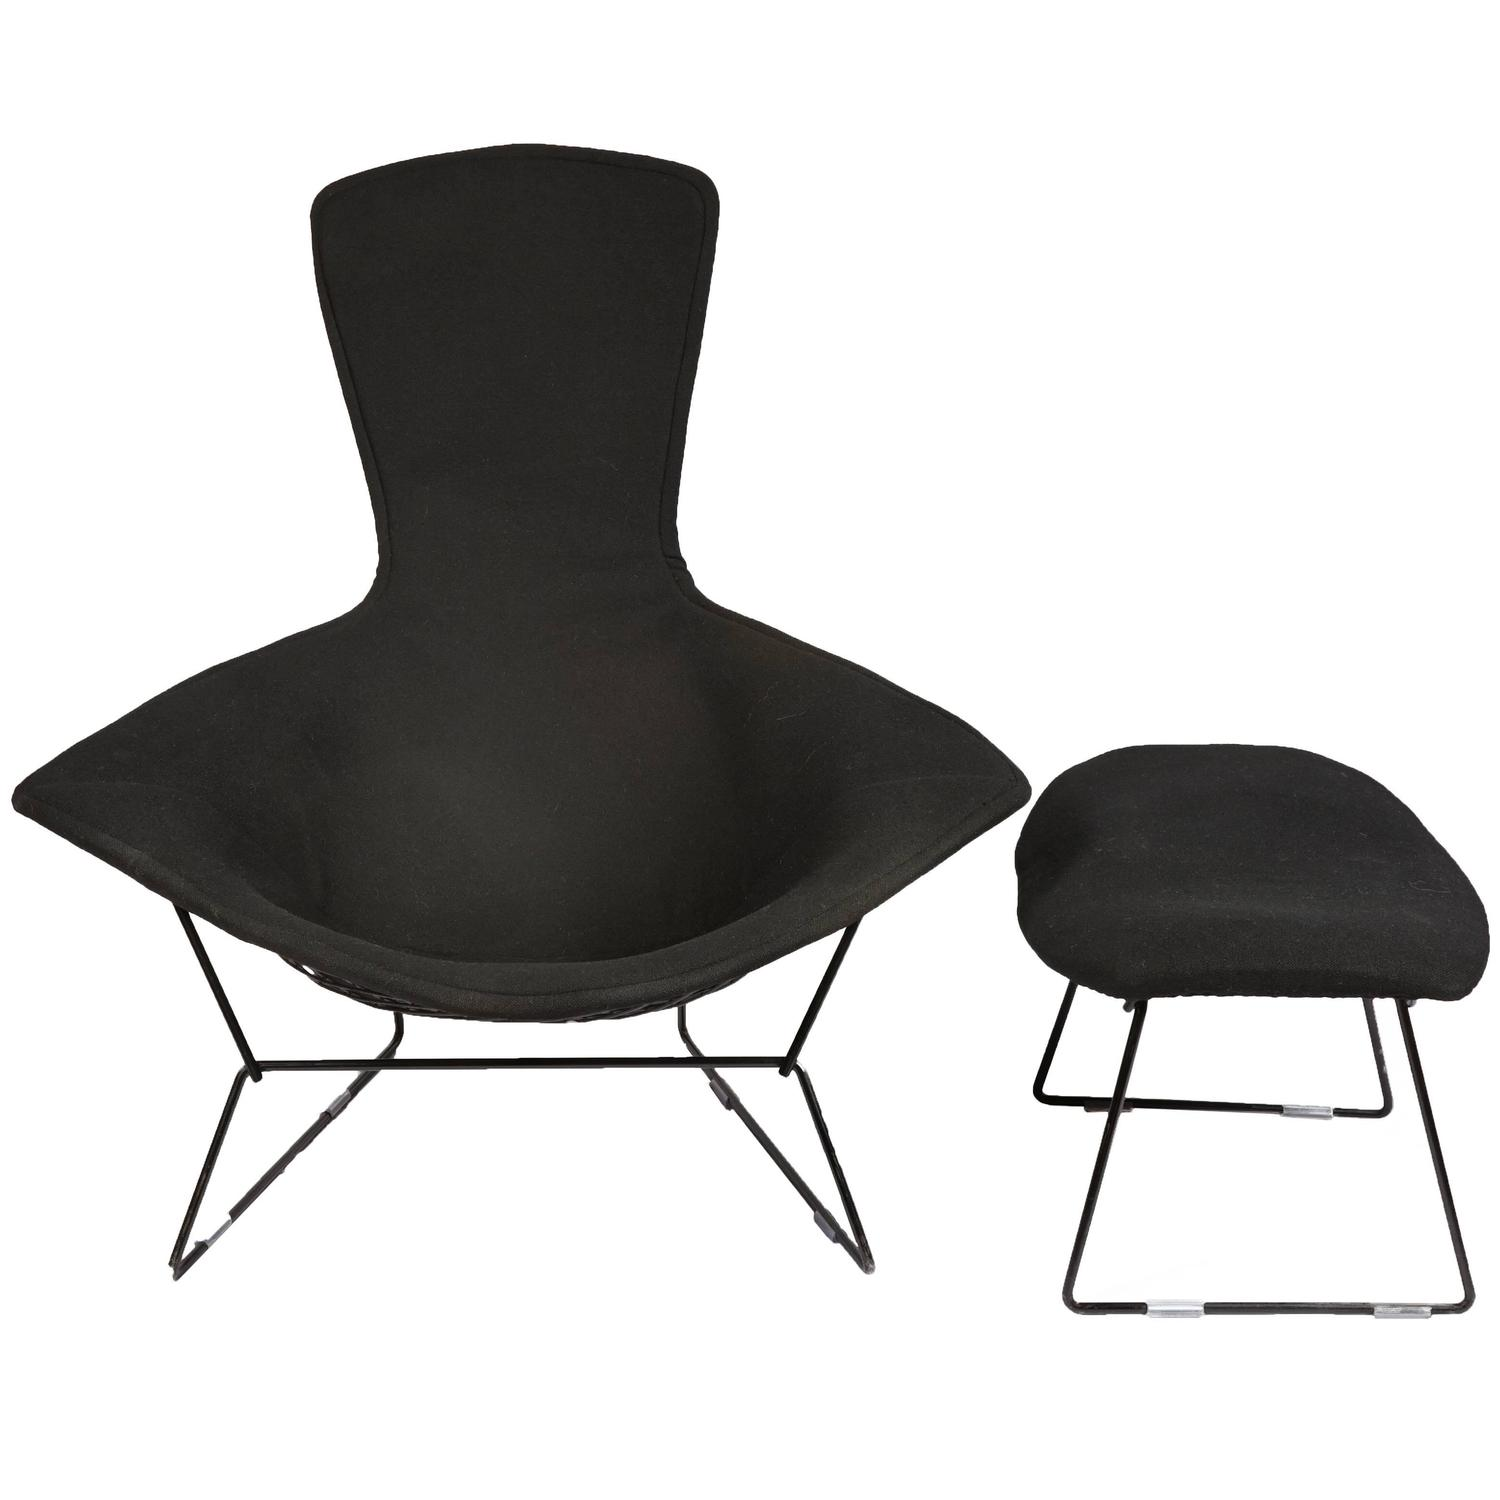 Vintage Bertoia Bird Chair and Ottoman with Full Cover in Classic